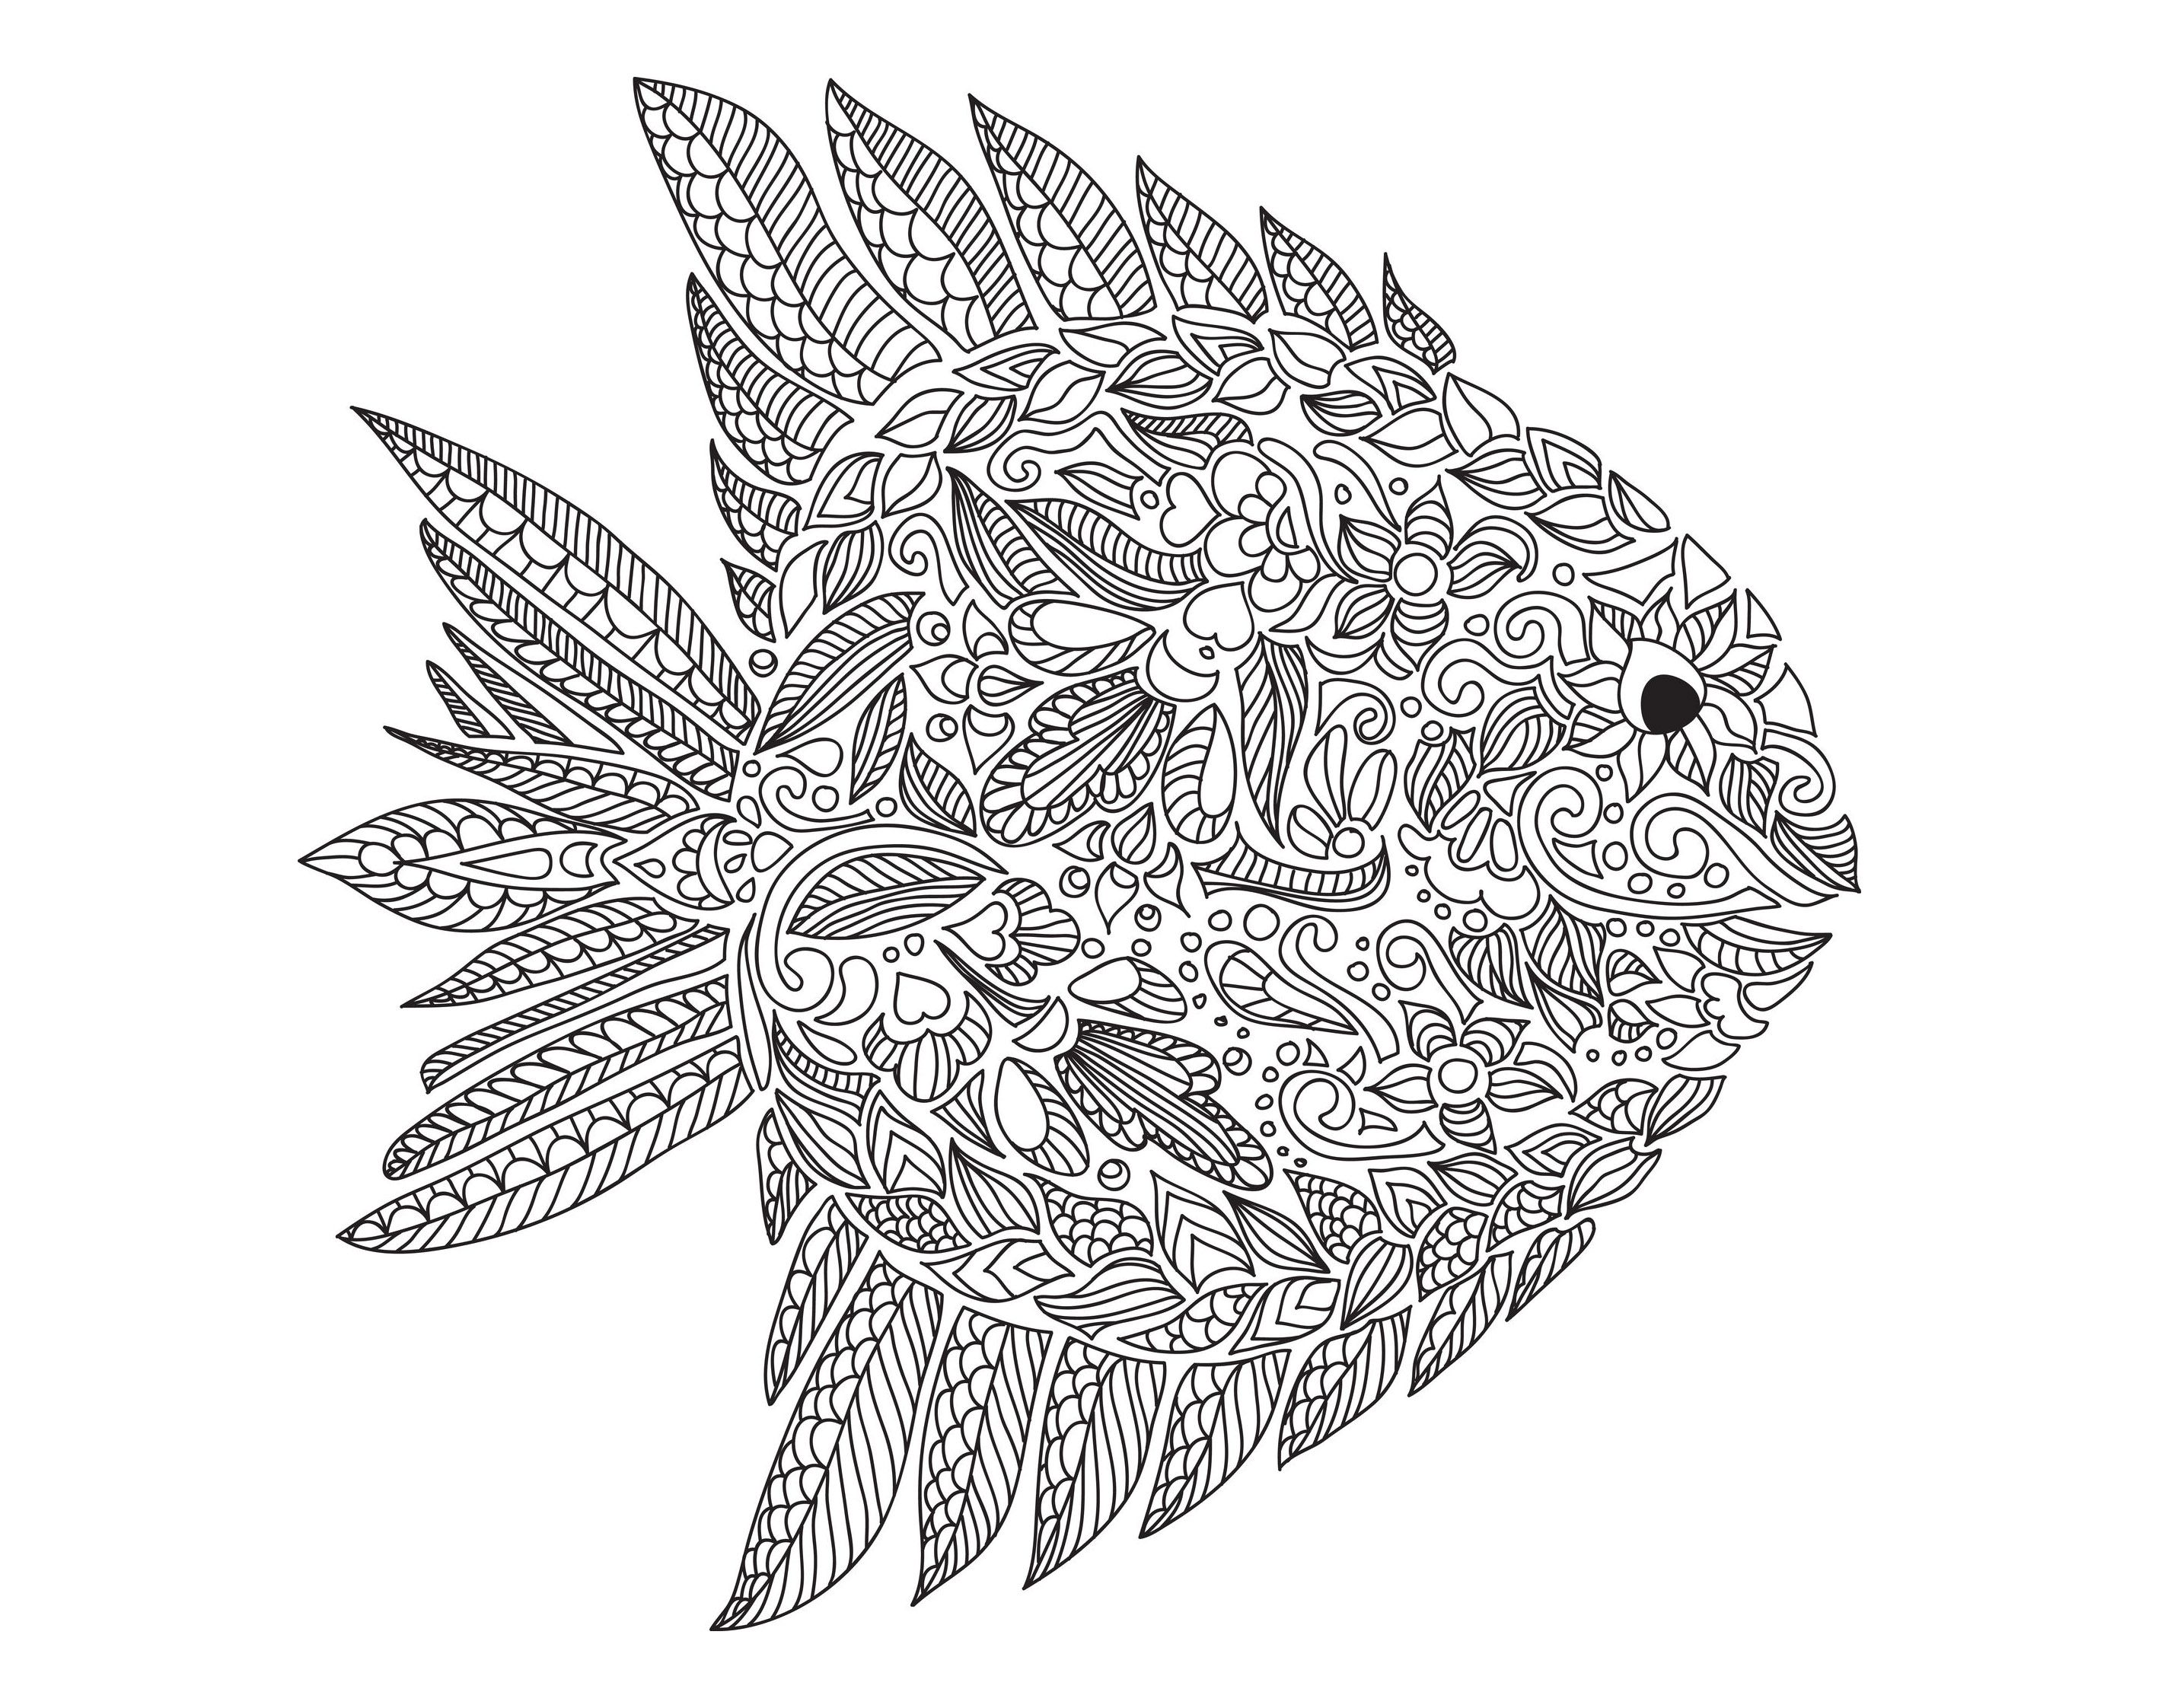 Free coloring pages fish - Free Coloring Page Coloring Adult Zentangle Fish By Artnataliia Zentangle